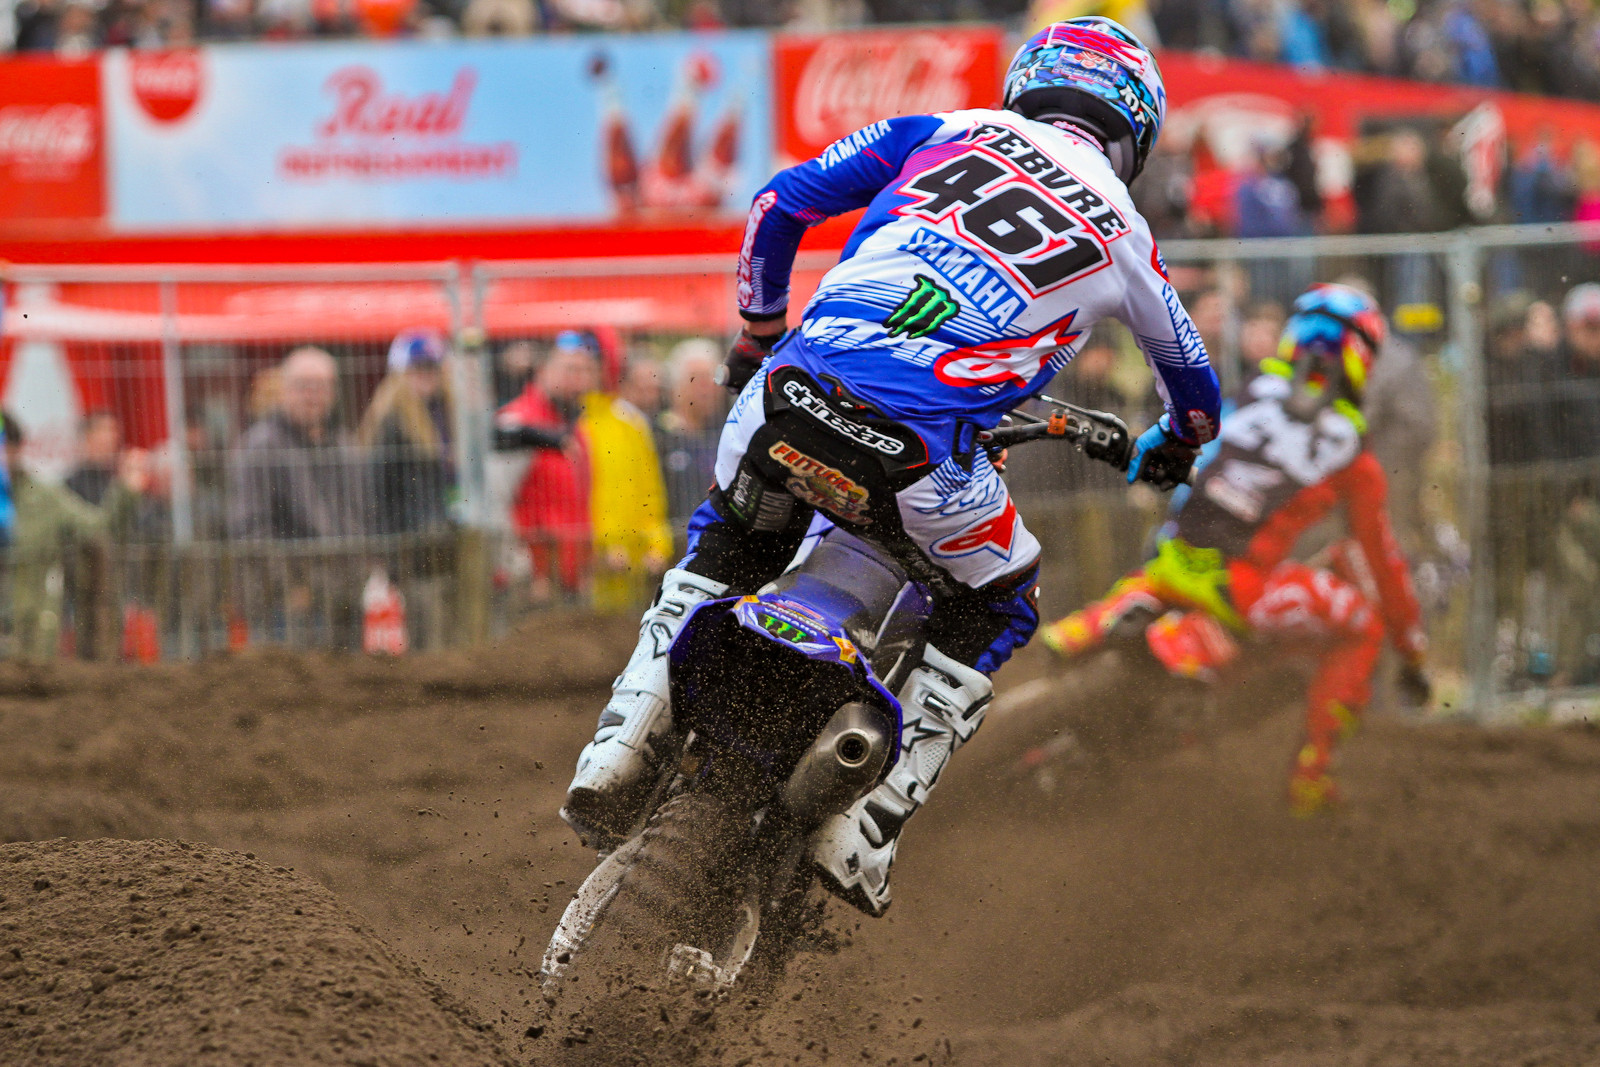 Romain Febvre - Photo Blast: 2017 MXGP of Valkenswaard - Motocross Pictures - Vital MX